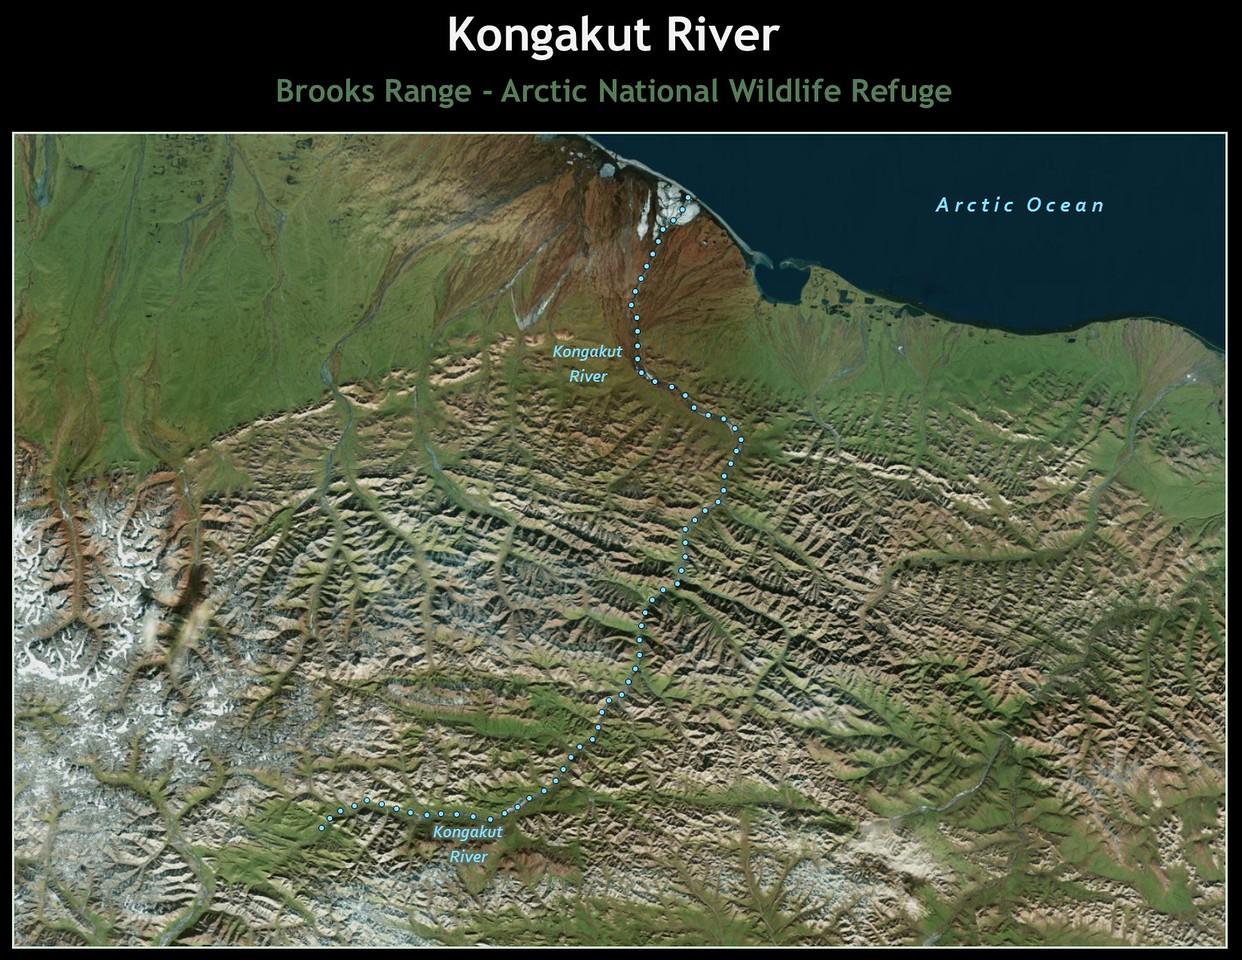 The river flows for nearly 100 miles from its headwaters between the Romanzof and Davidson Mountains of the Eastern Brooks Range to the Arctic Ocean.